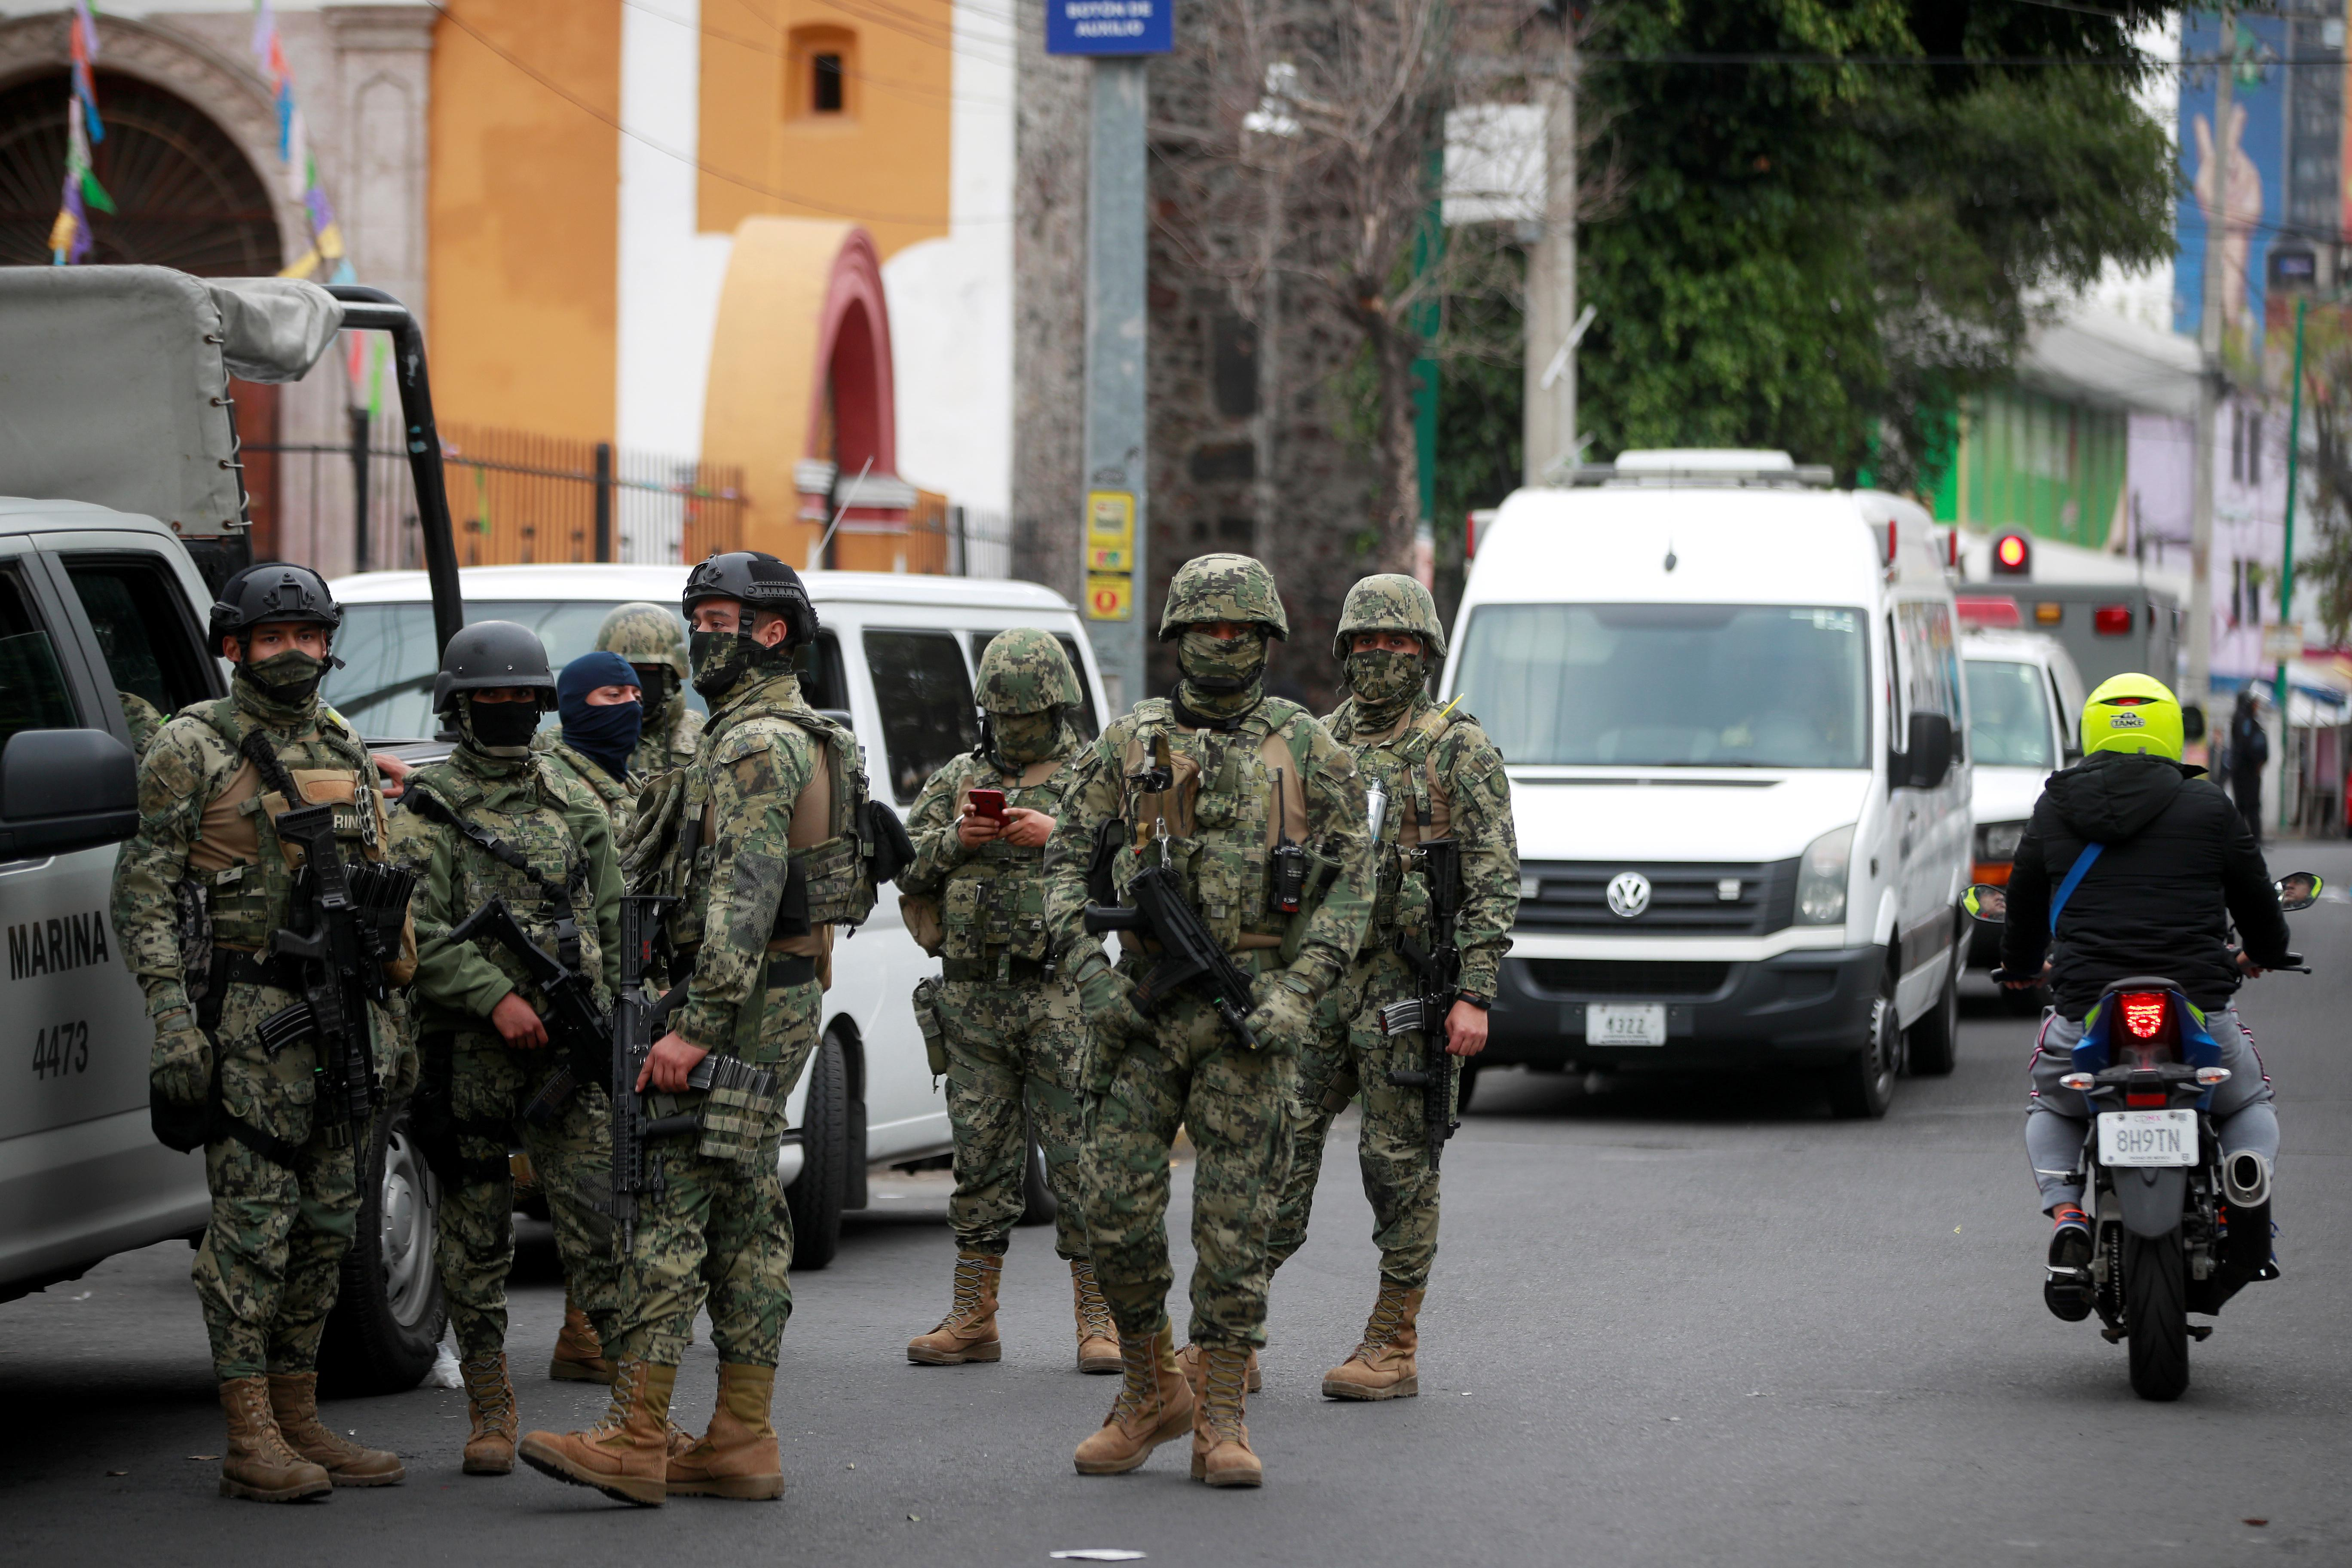 Security forces arrest 31 cartel suspects in raid on Mexico City...